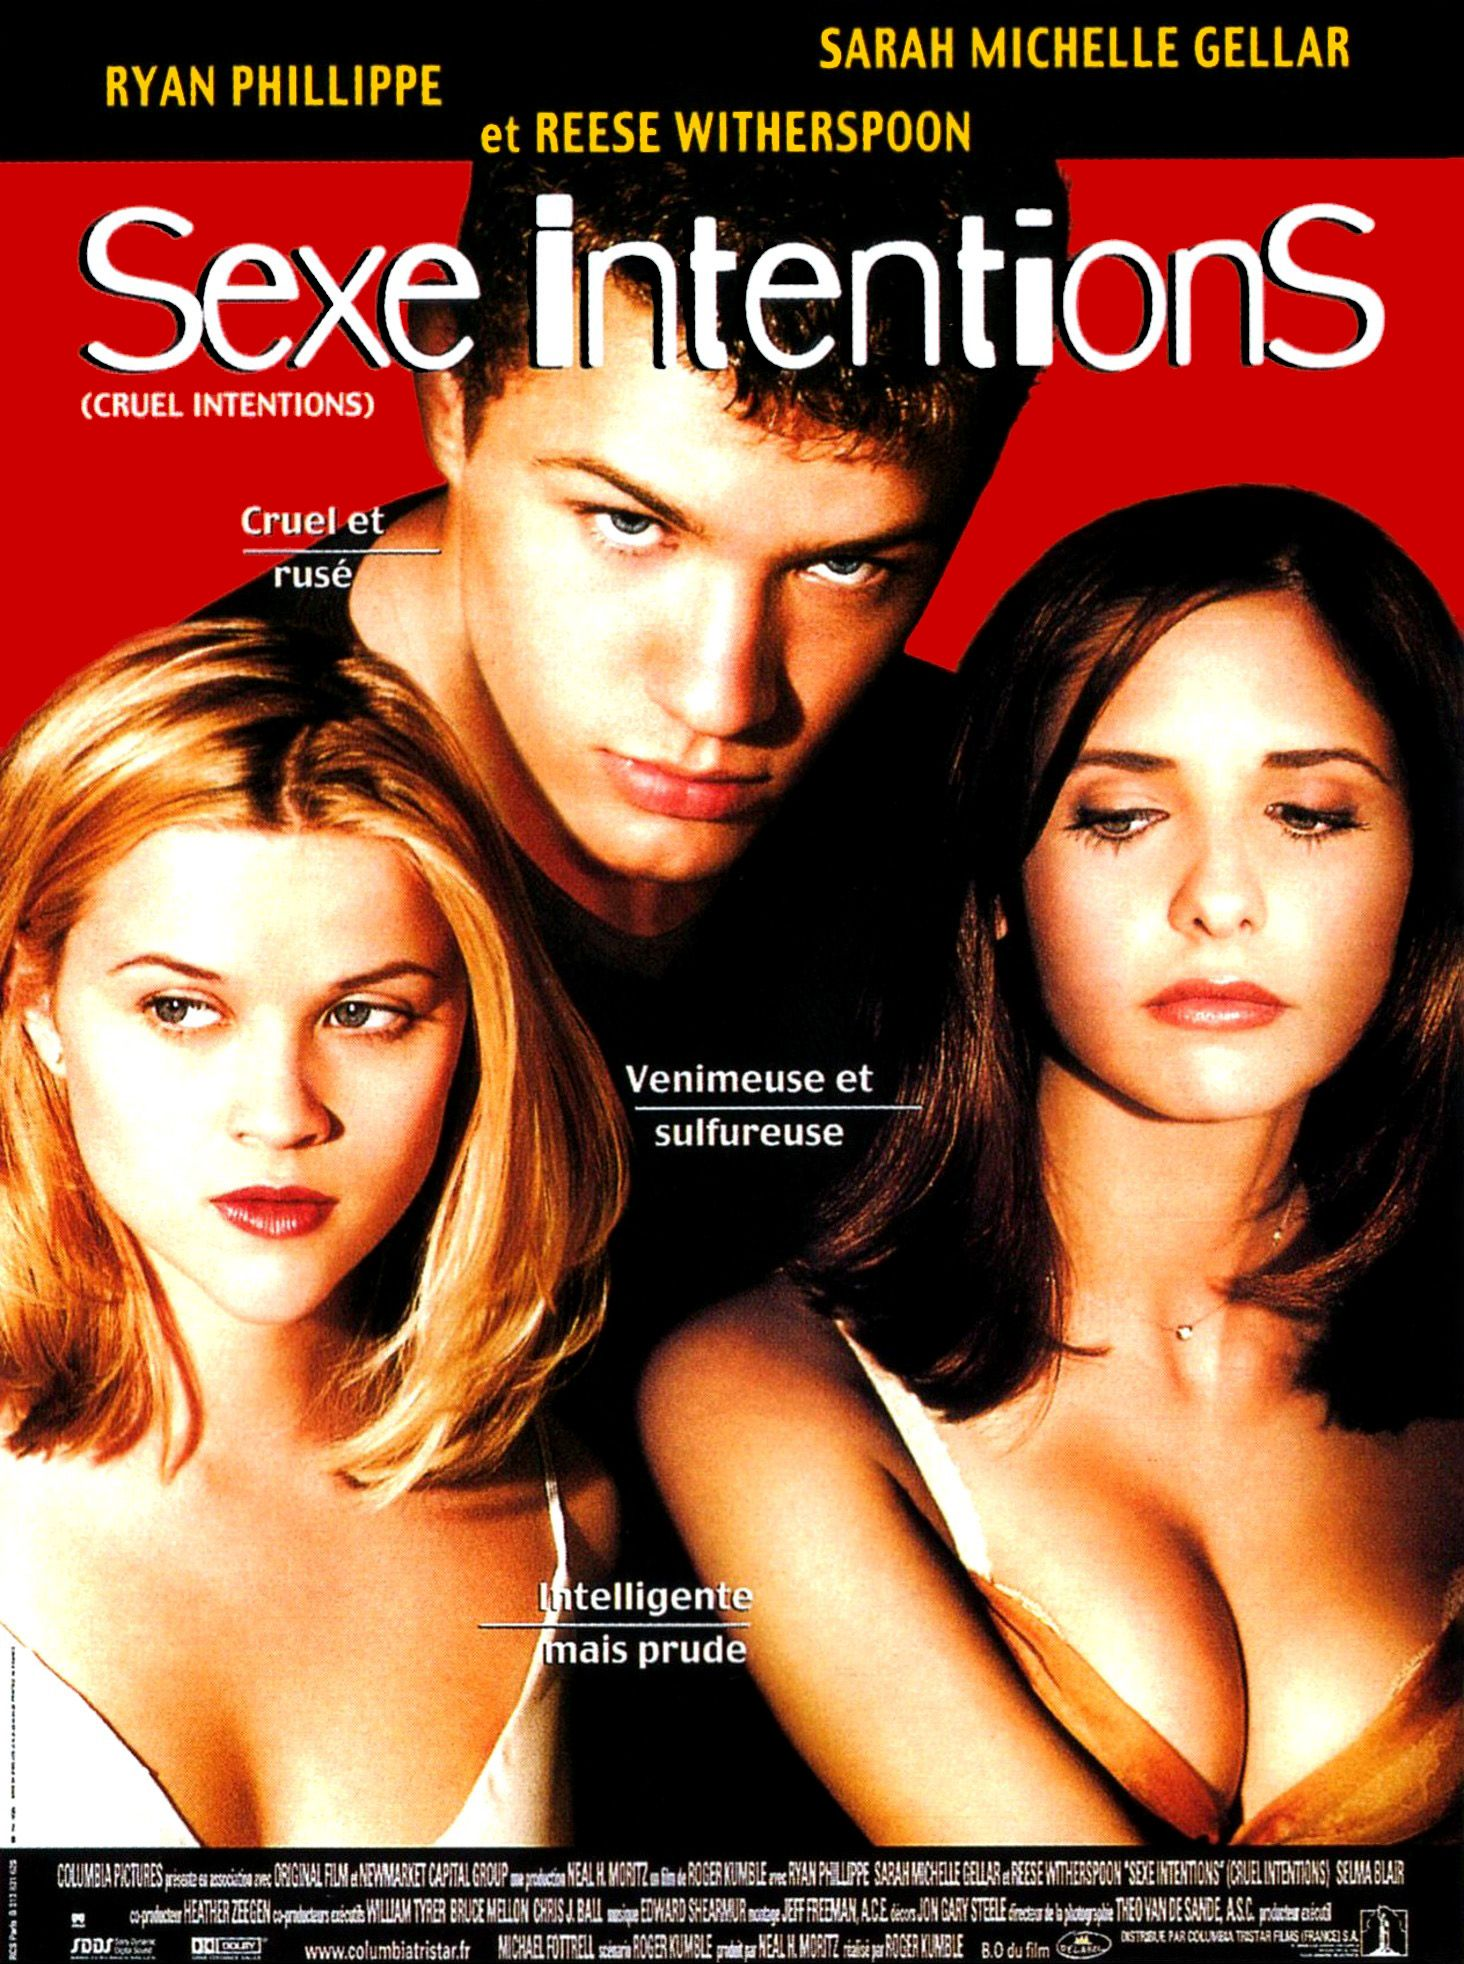 film sexe intention le sexe Tufik